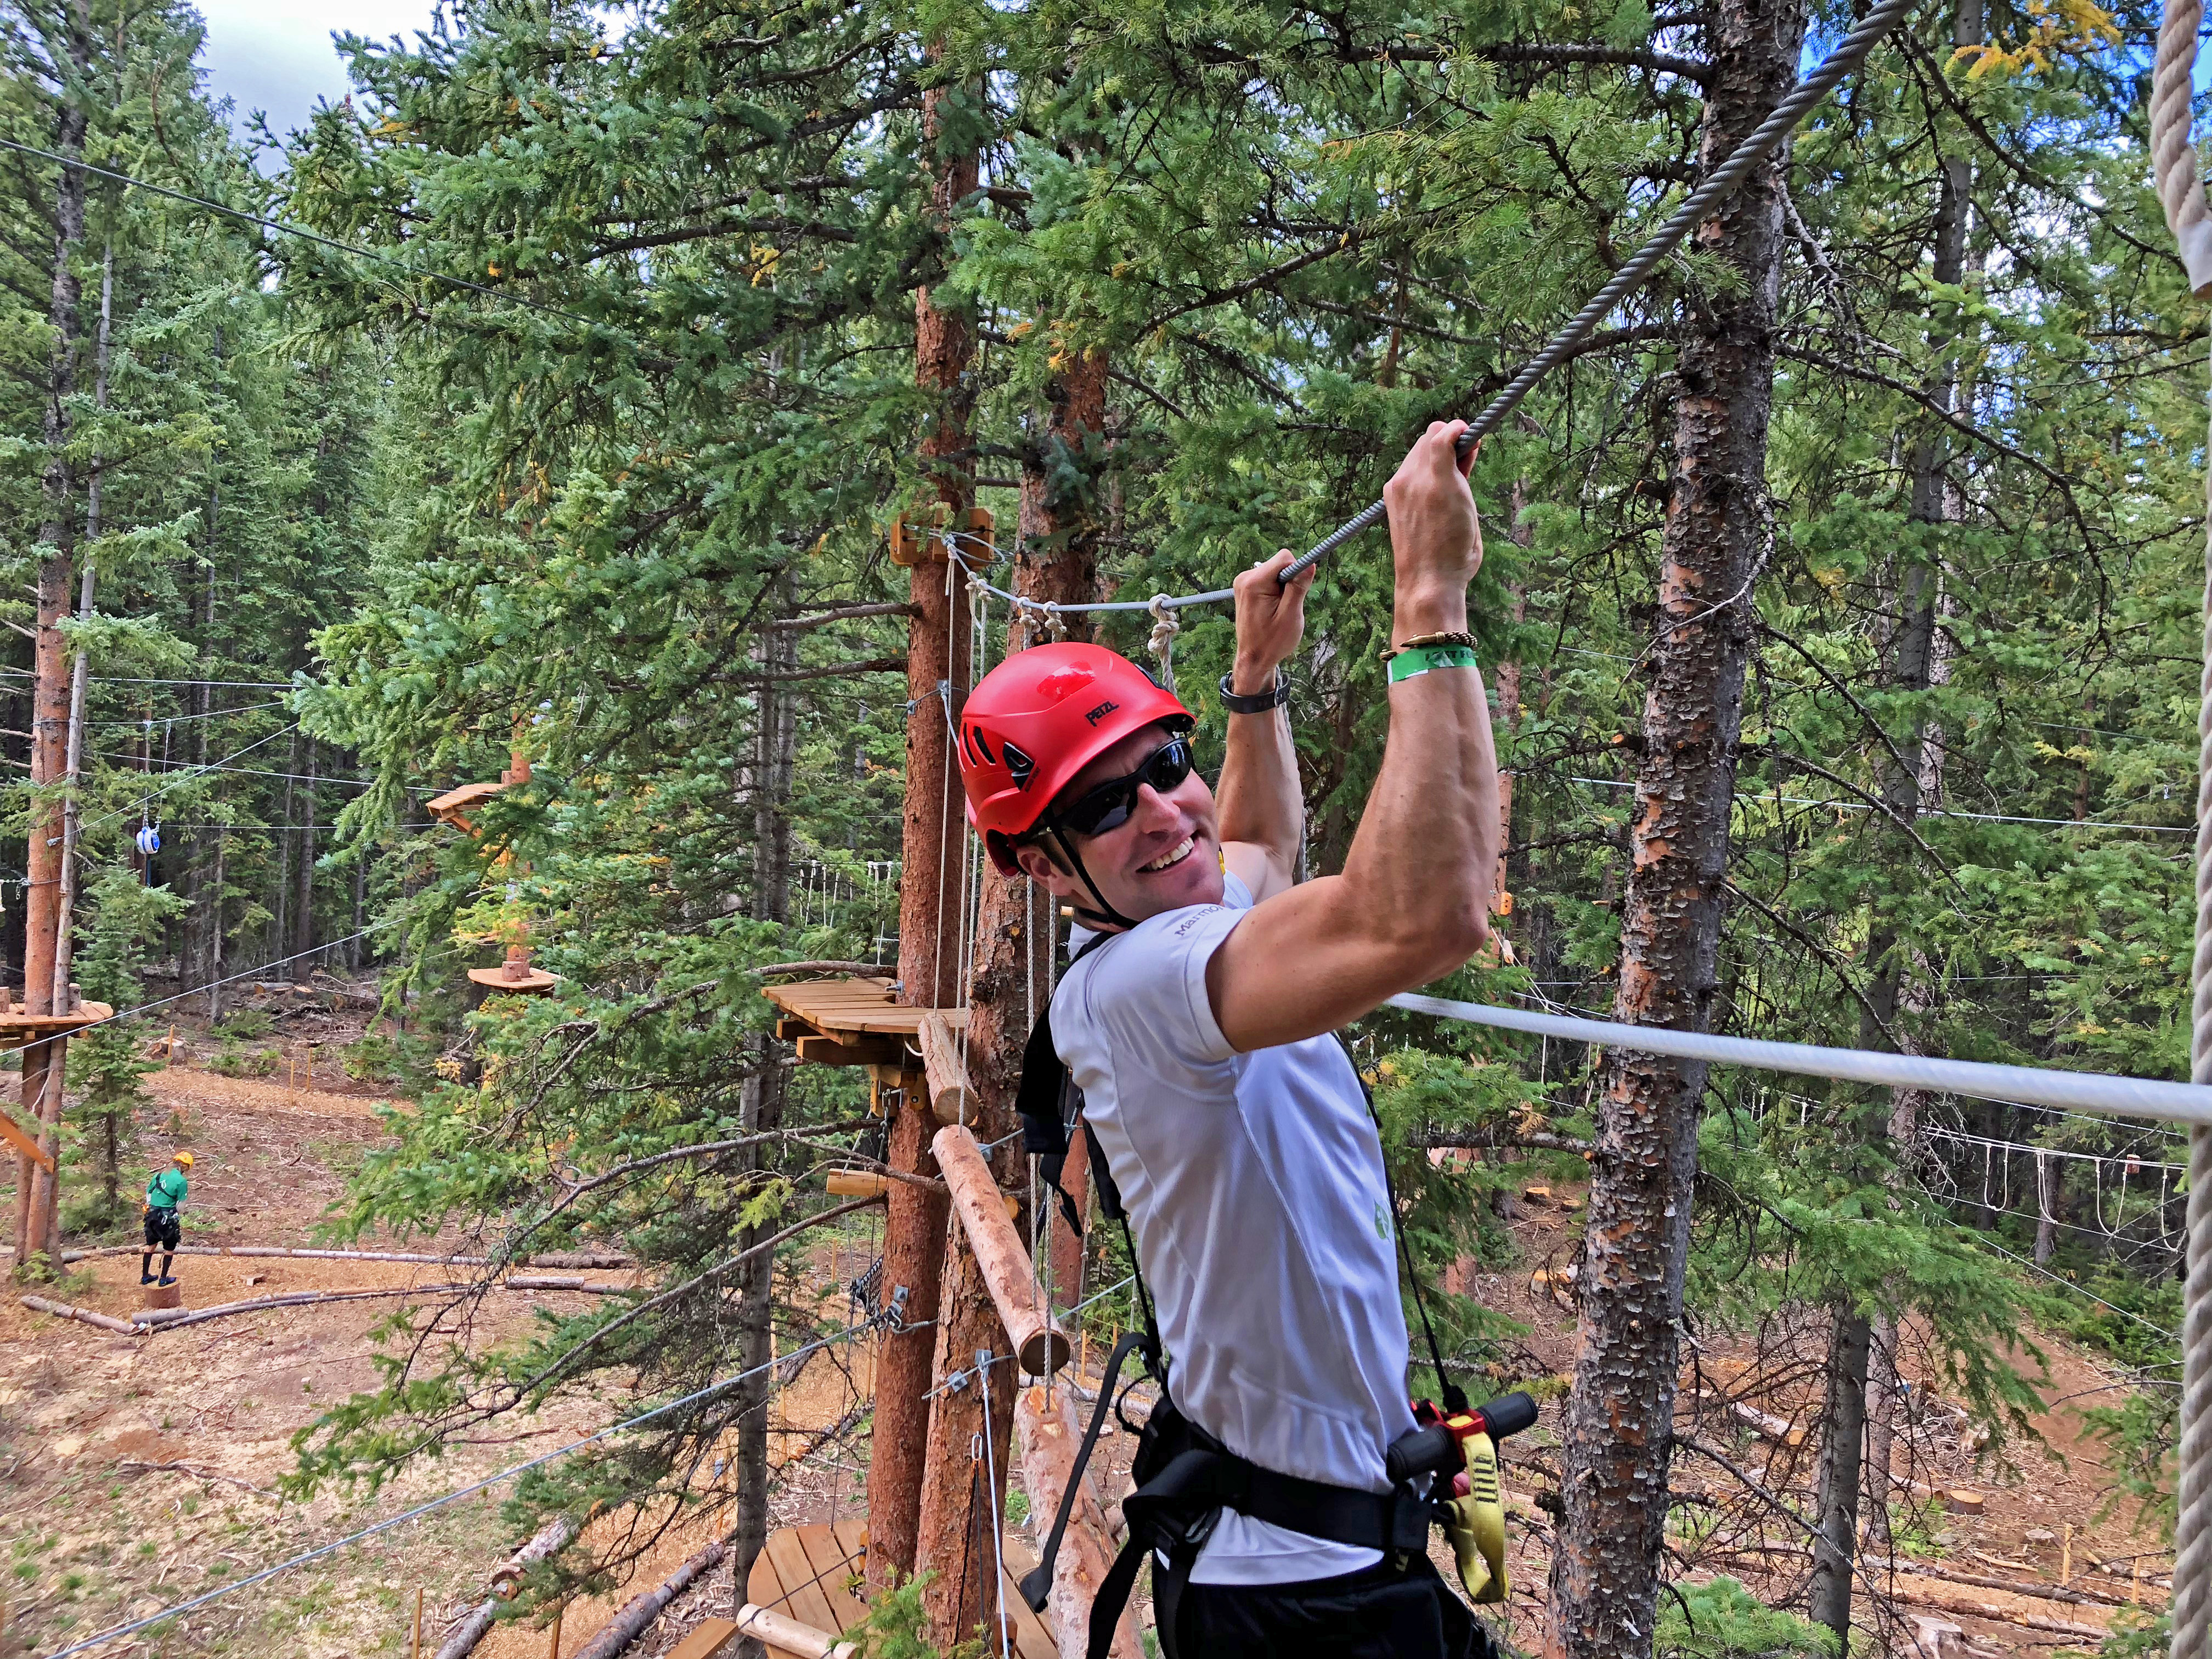 Man on Zip Line Course in Snowmass Colorado